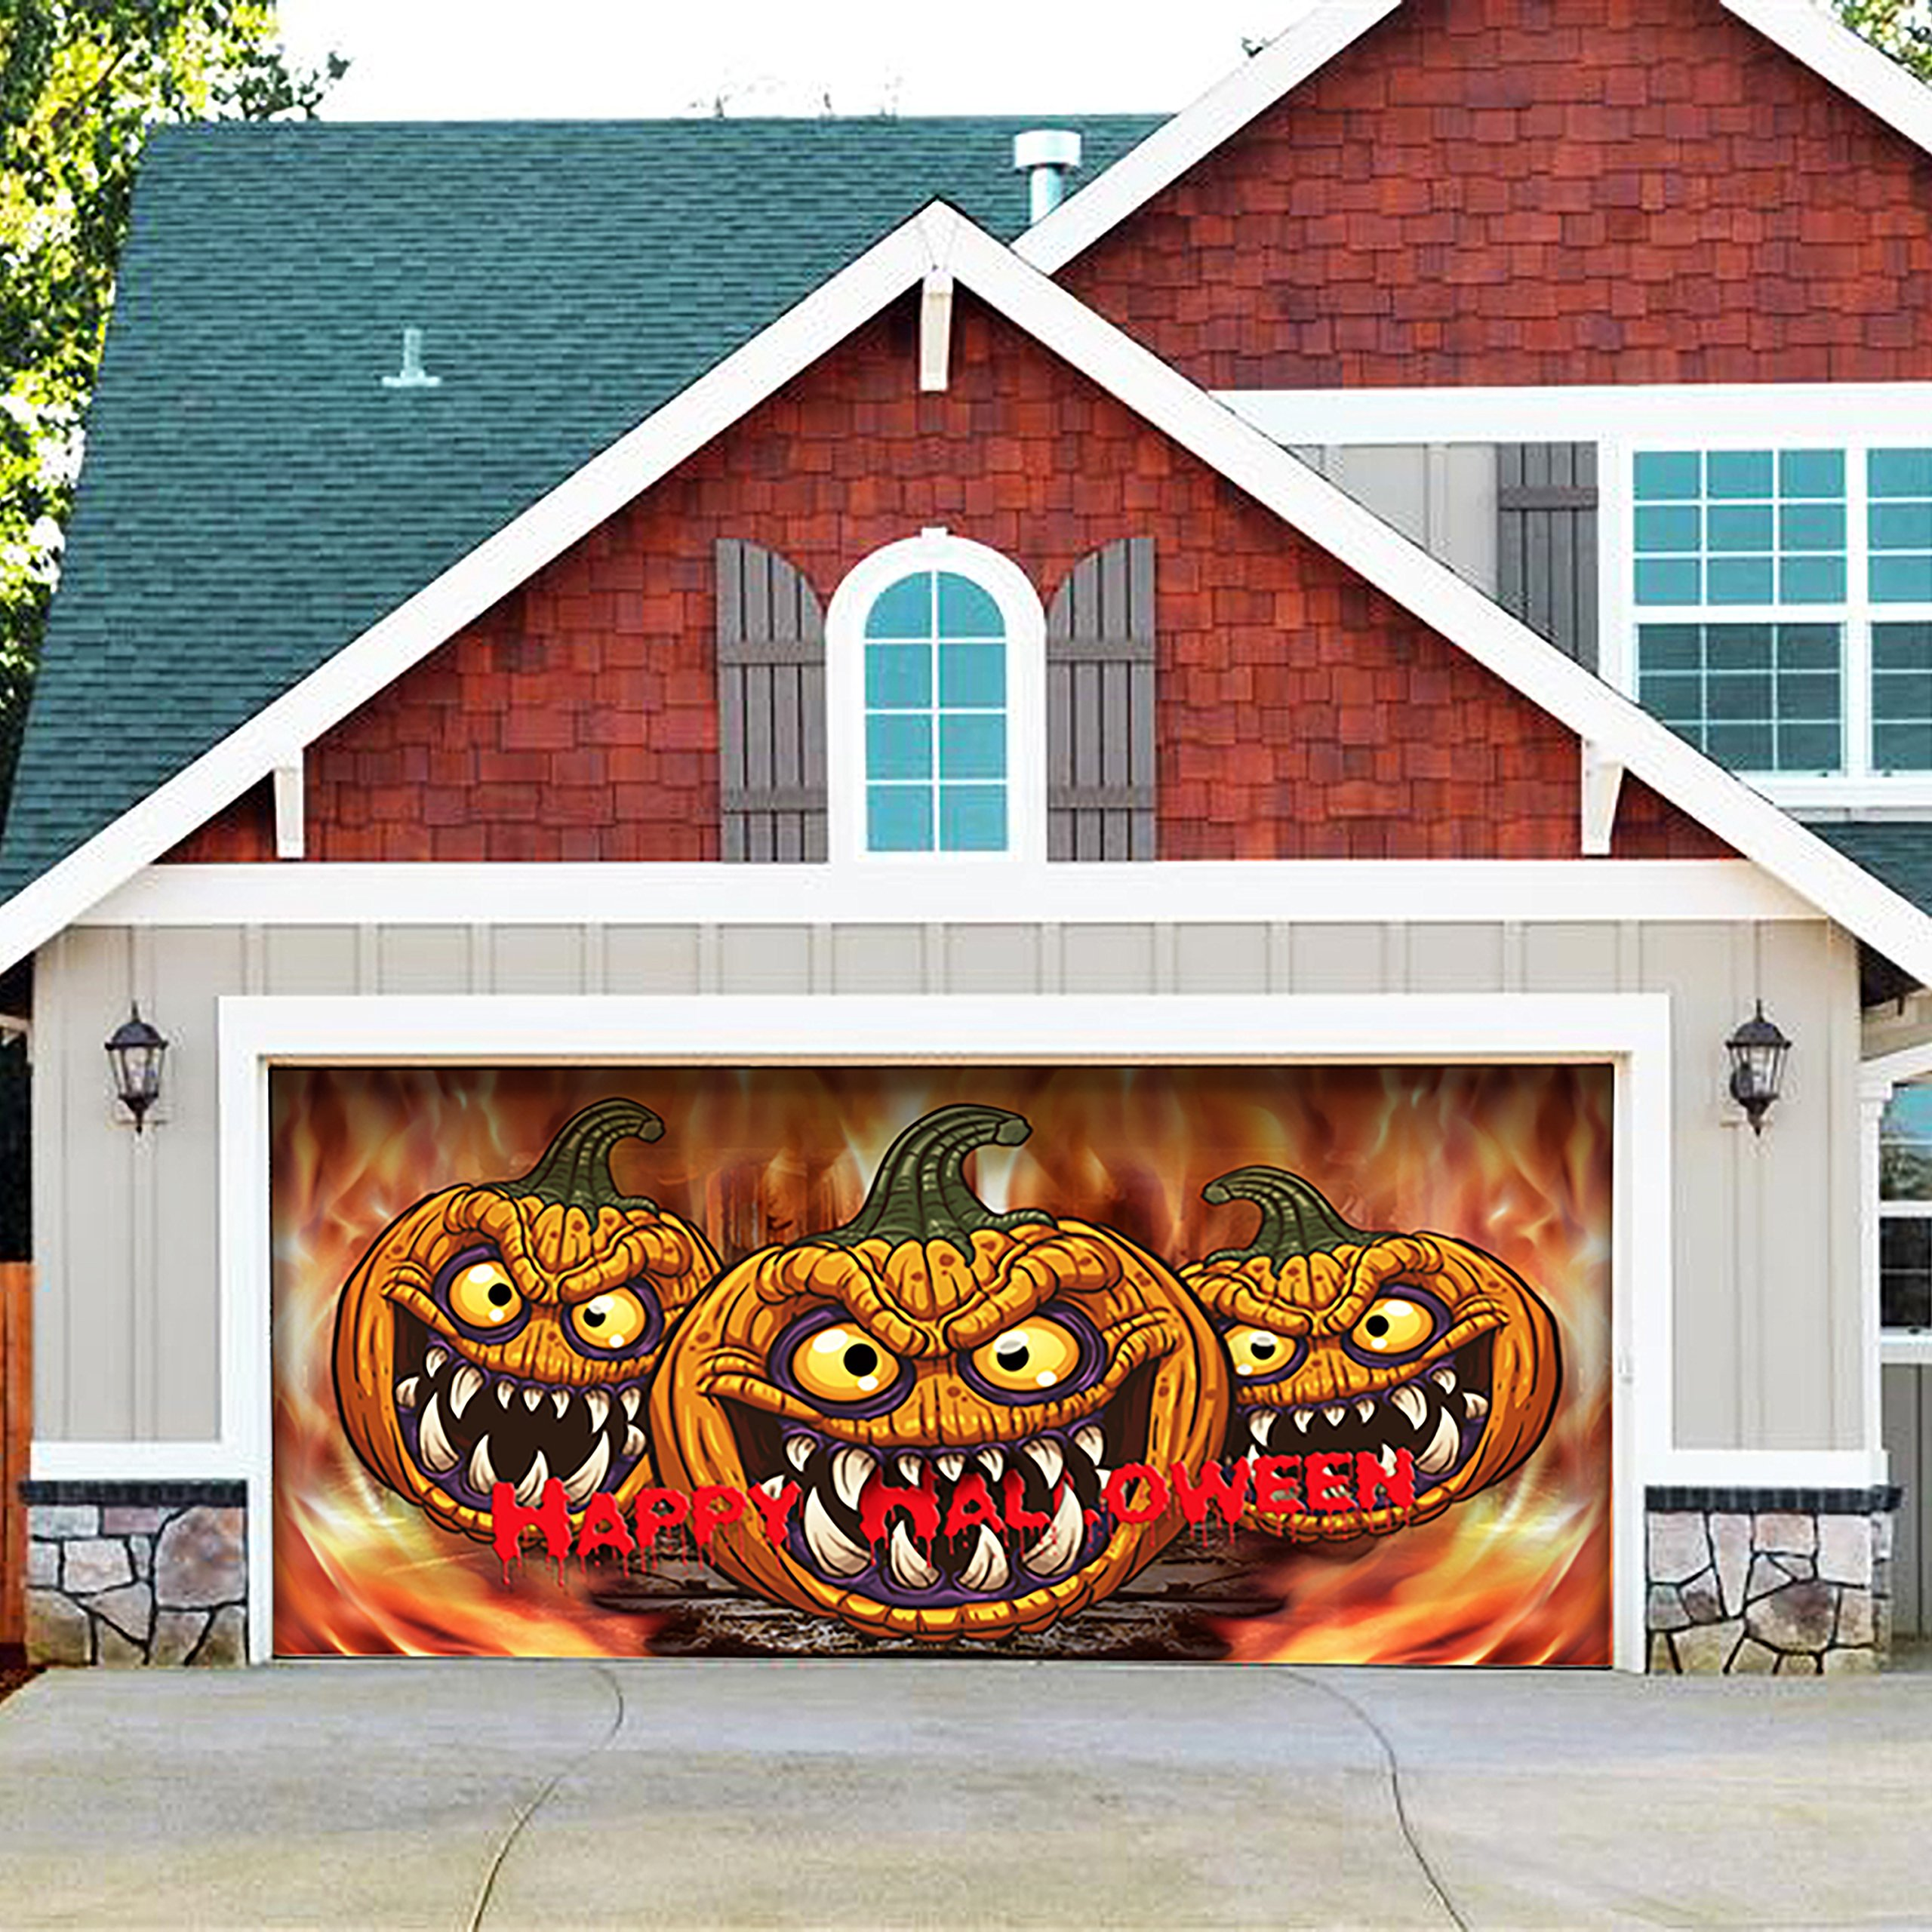 Outdoor Christmas Holiday Garage Door Banner Cover Mural Décoration 7'x16' - Three Scary Pumpkins Outdoor Halloween Garage Door Banner Décor Sign 7'x16' by Victory Corps